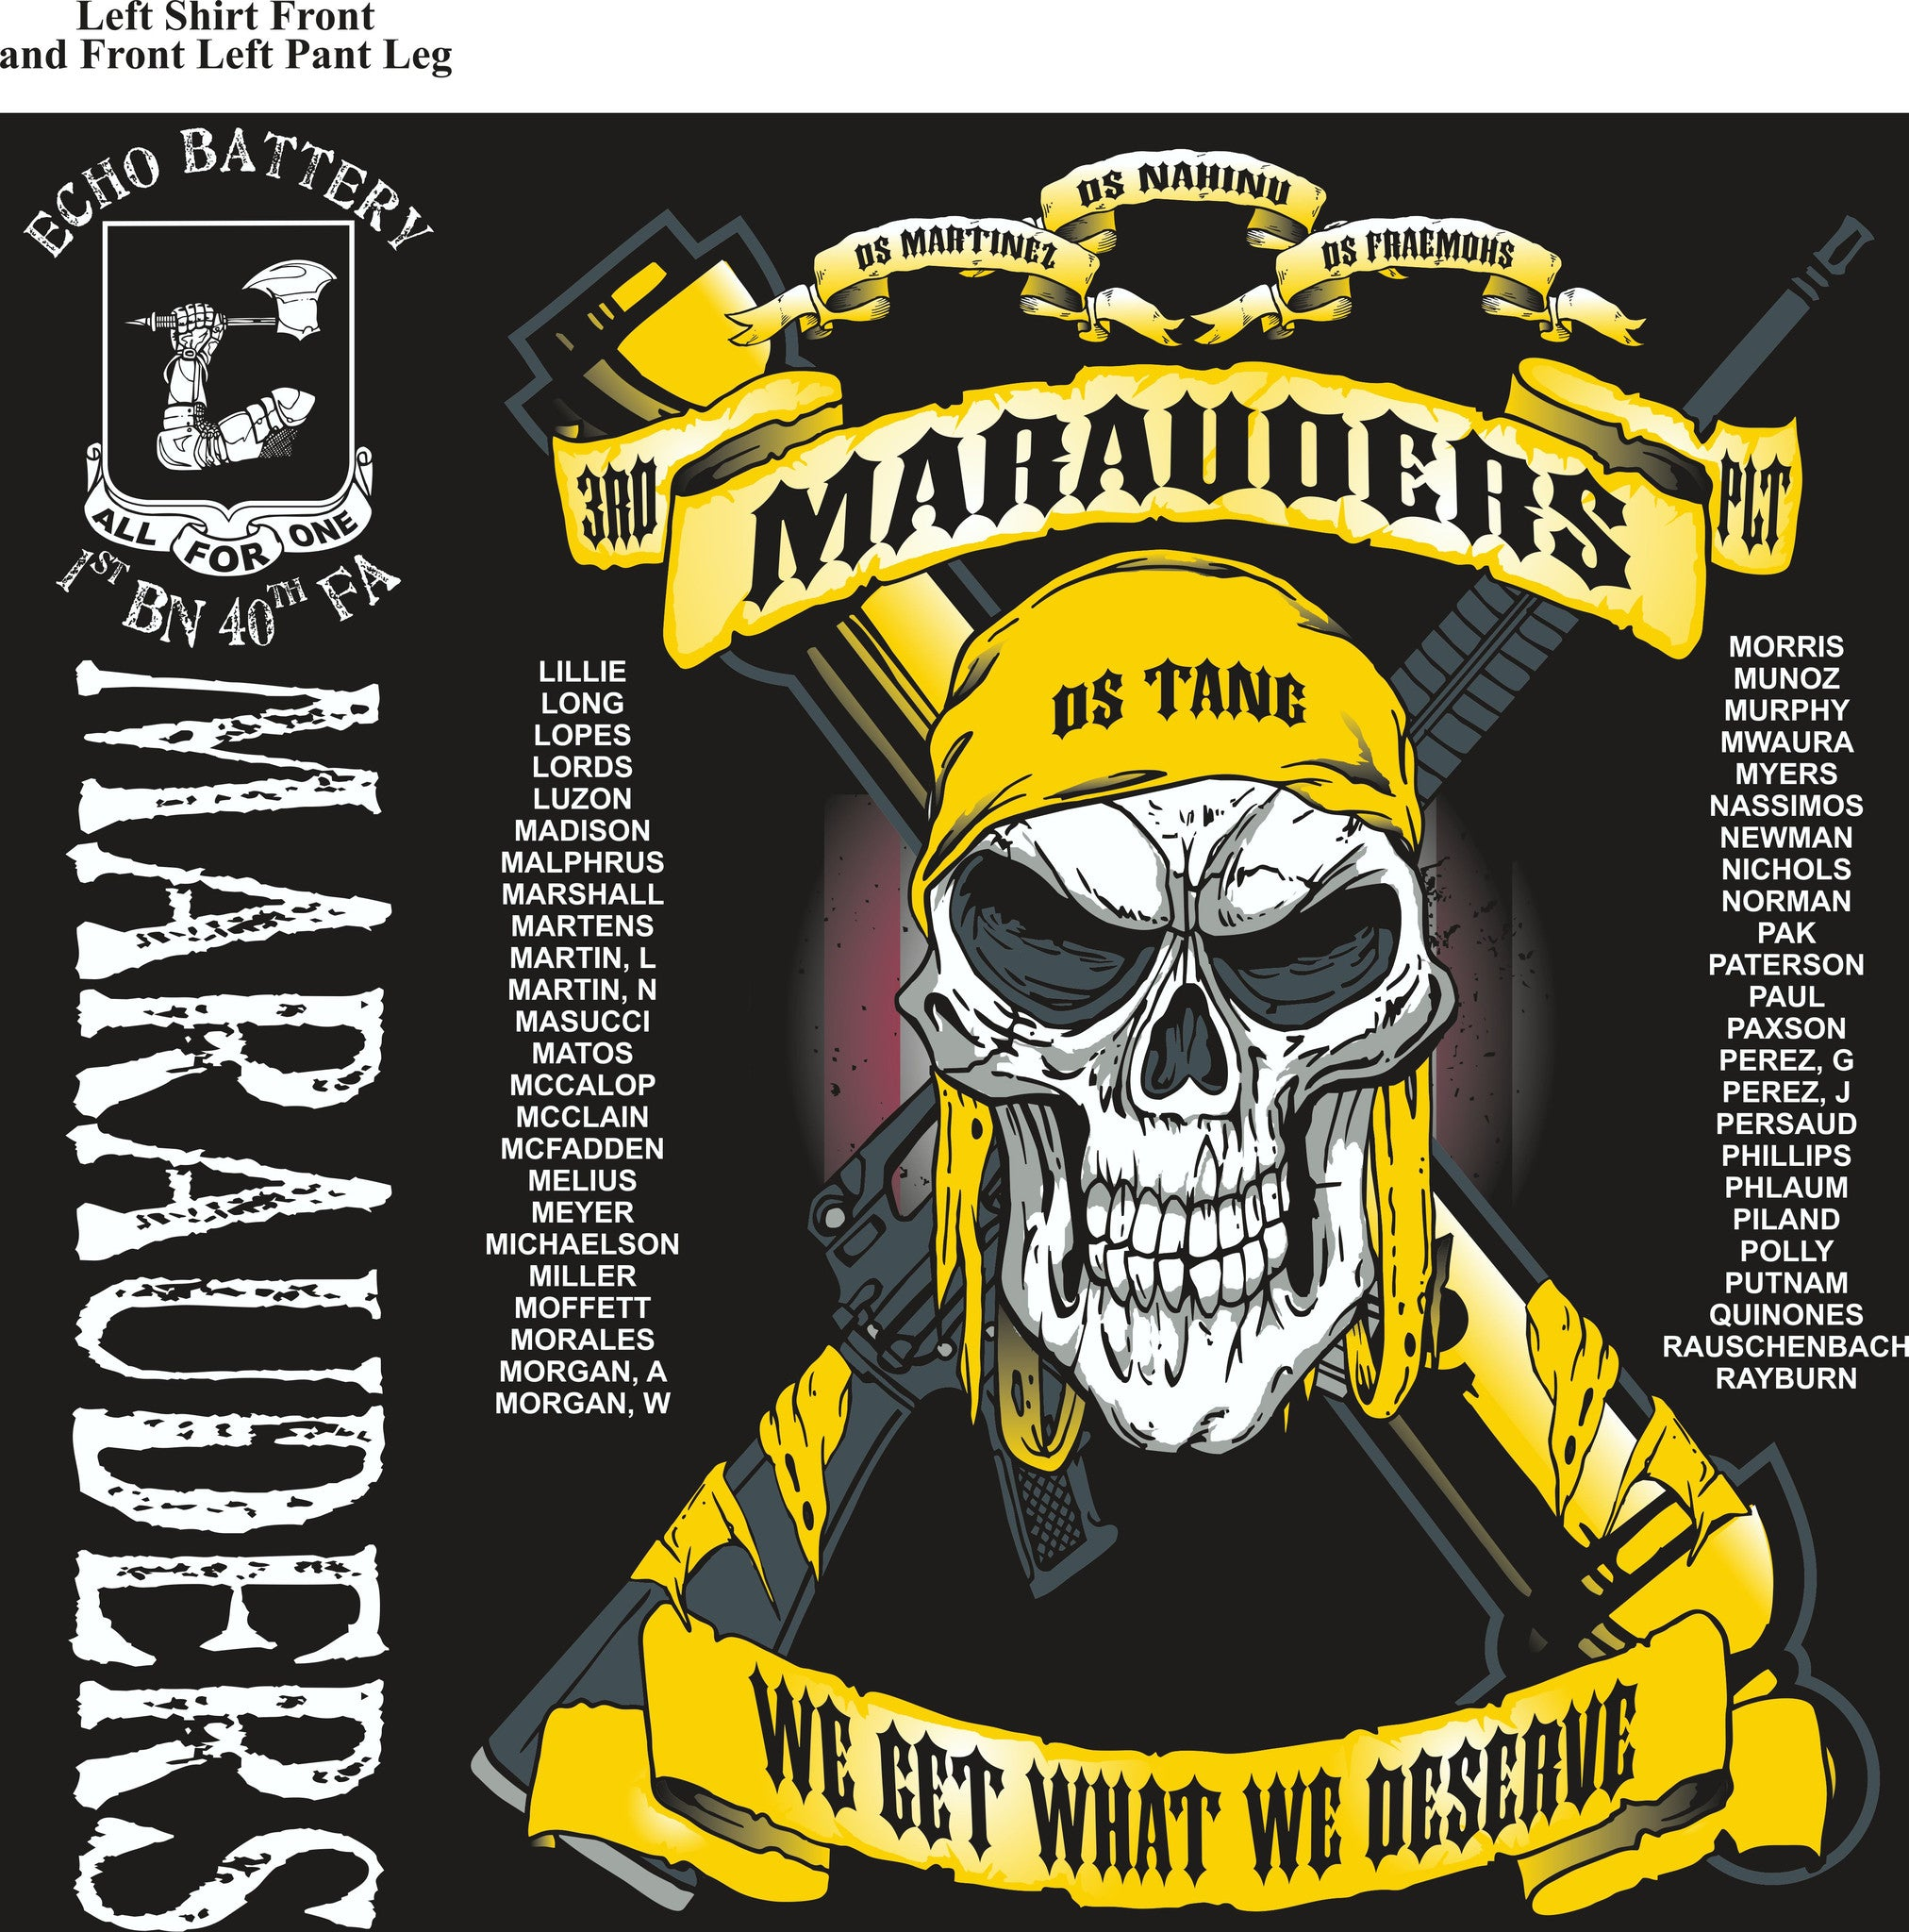 PLATOON SHIRTS (2nd generation print) ECHO 1st 40th MARAUDERS JAN 2017